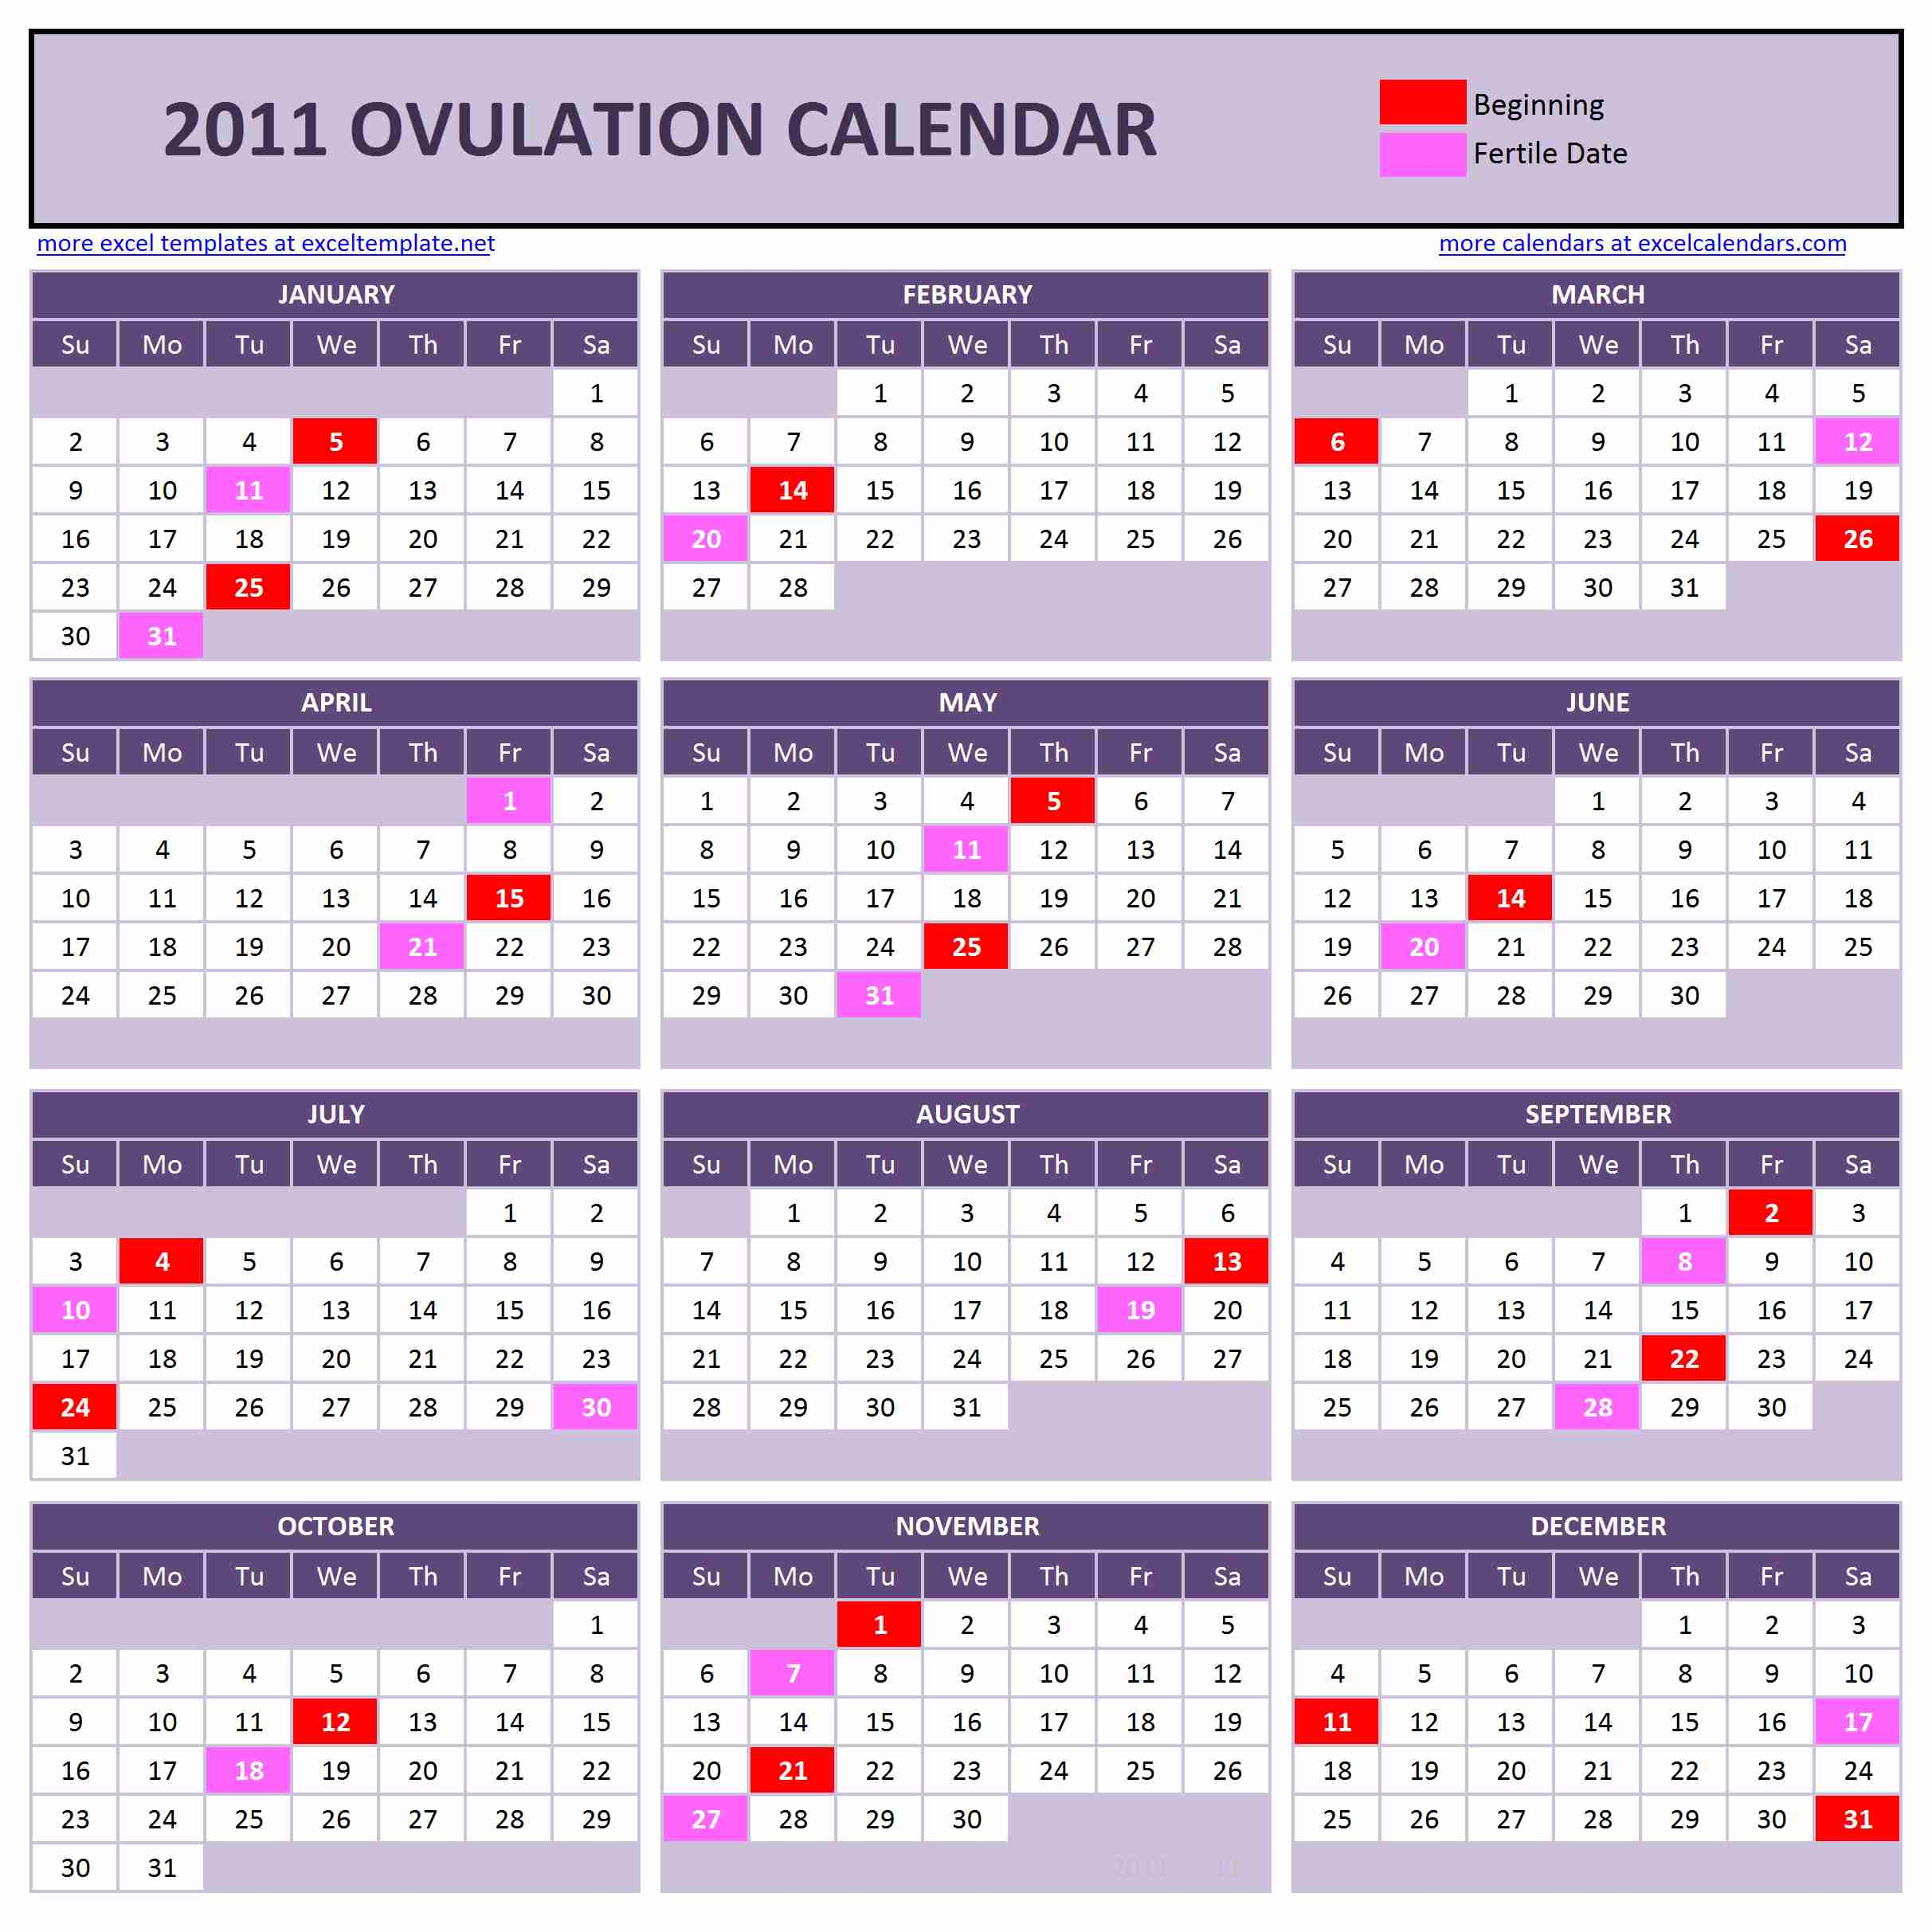 Year Calendar Calculator : Ovulation calendar basics autos post